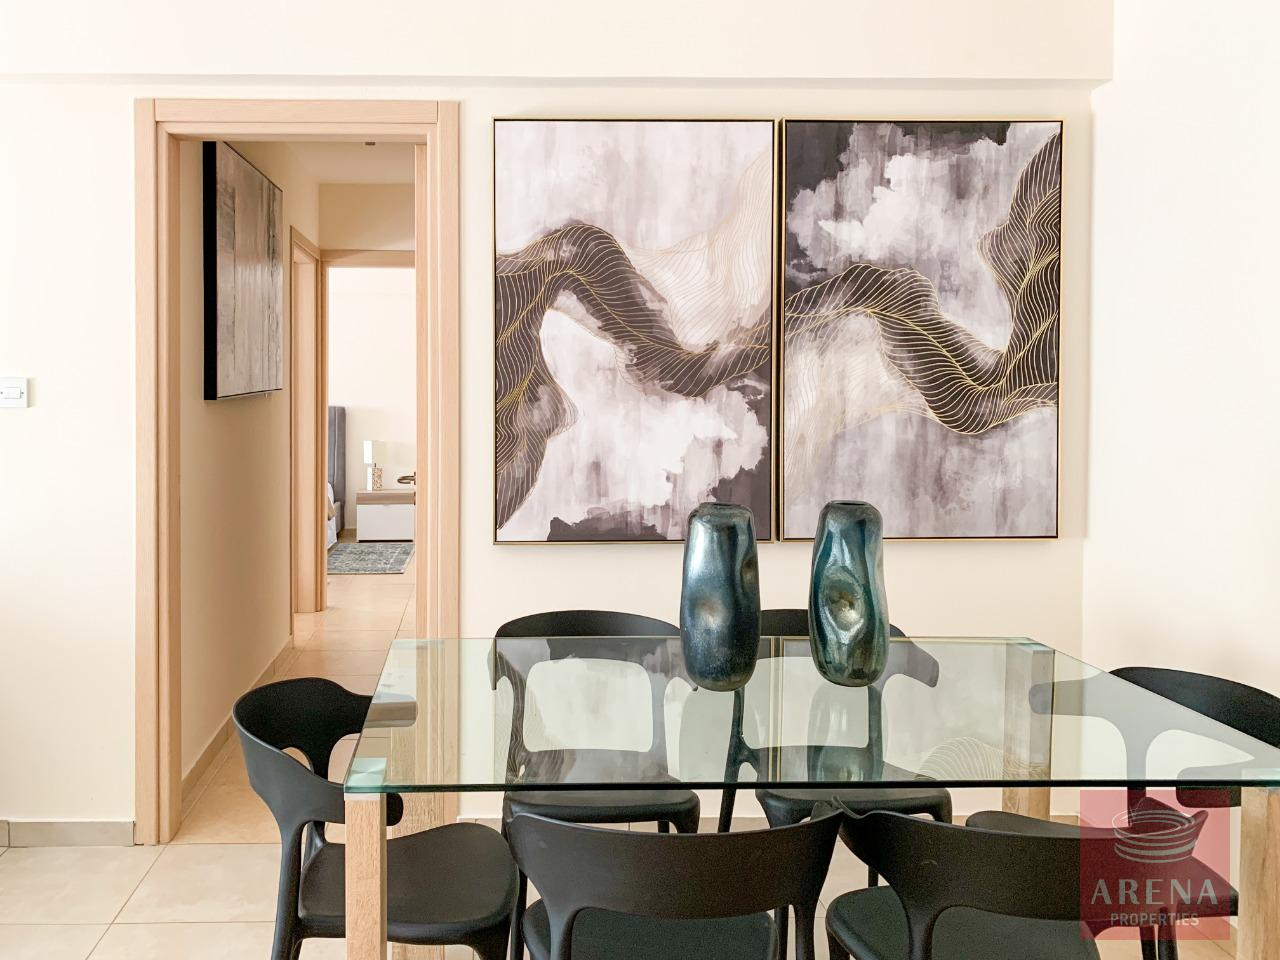 Apt for sale in Larnaca - dining area